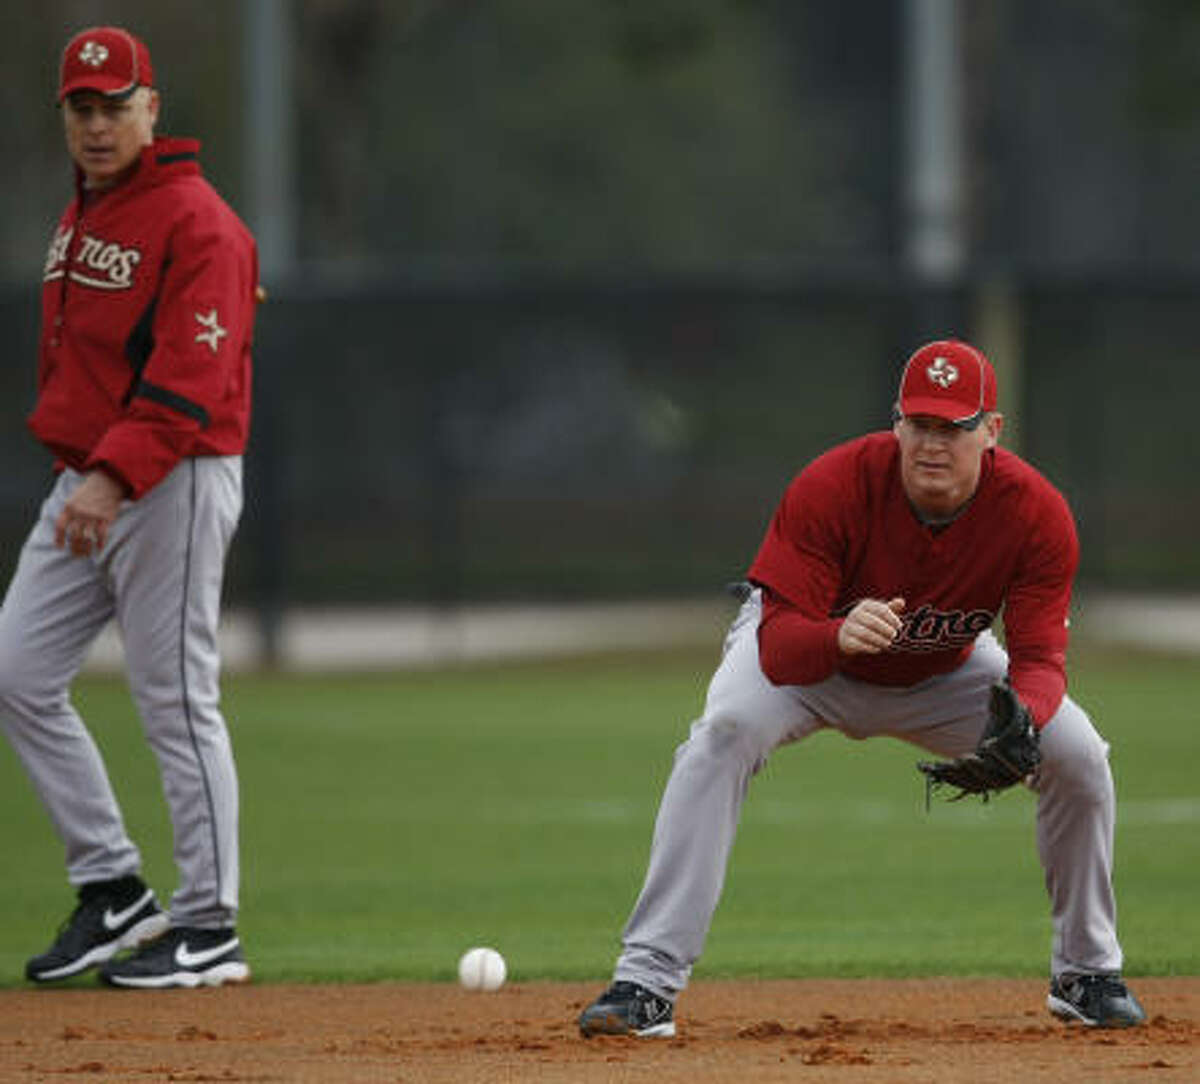 Manager Brad Mills, left, watches as infielder Geoff Blum take grounders at shortstop.